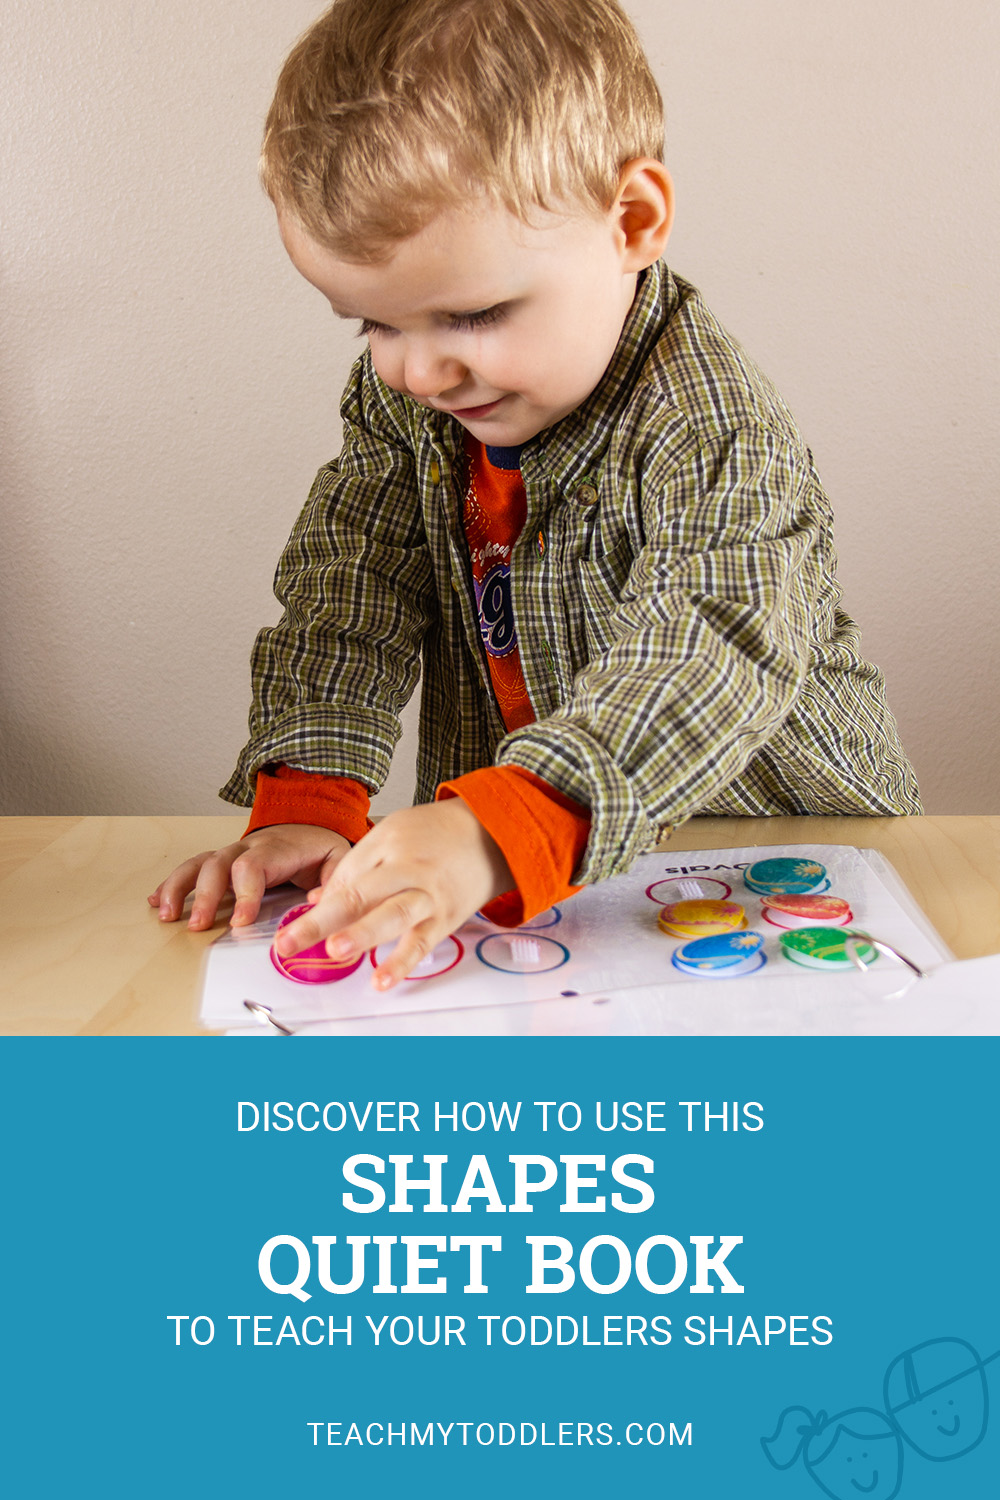 Discover how to use this shapes quiet book to teach your toddlers shapes